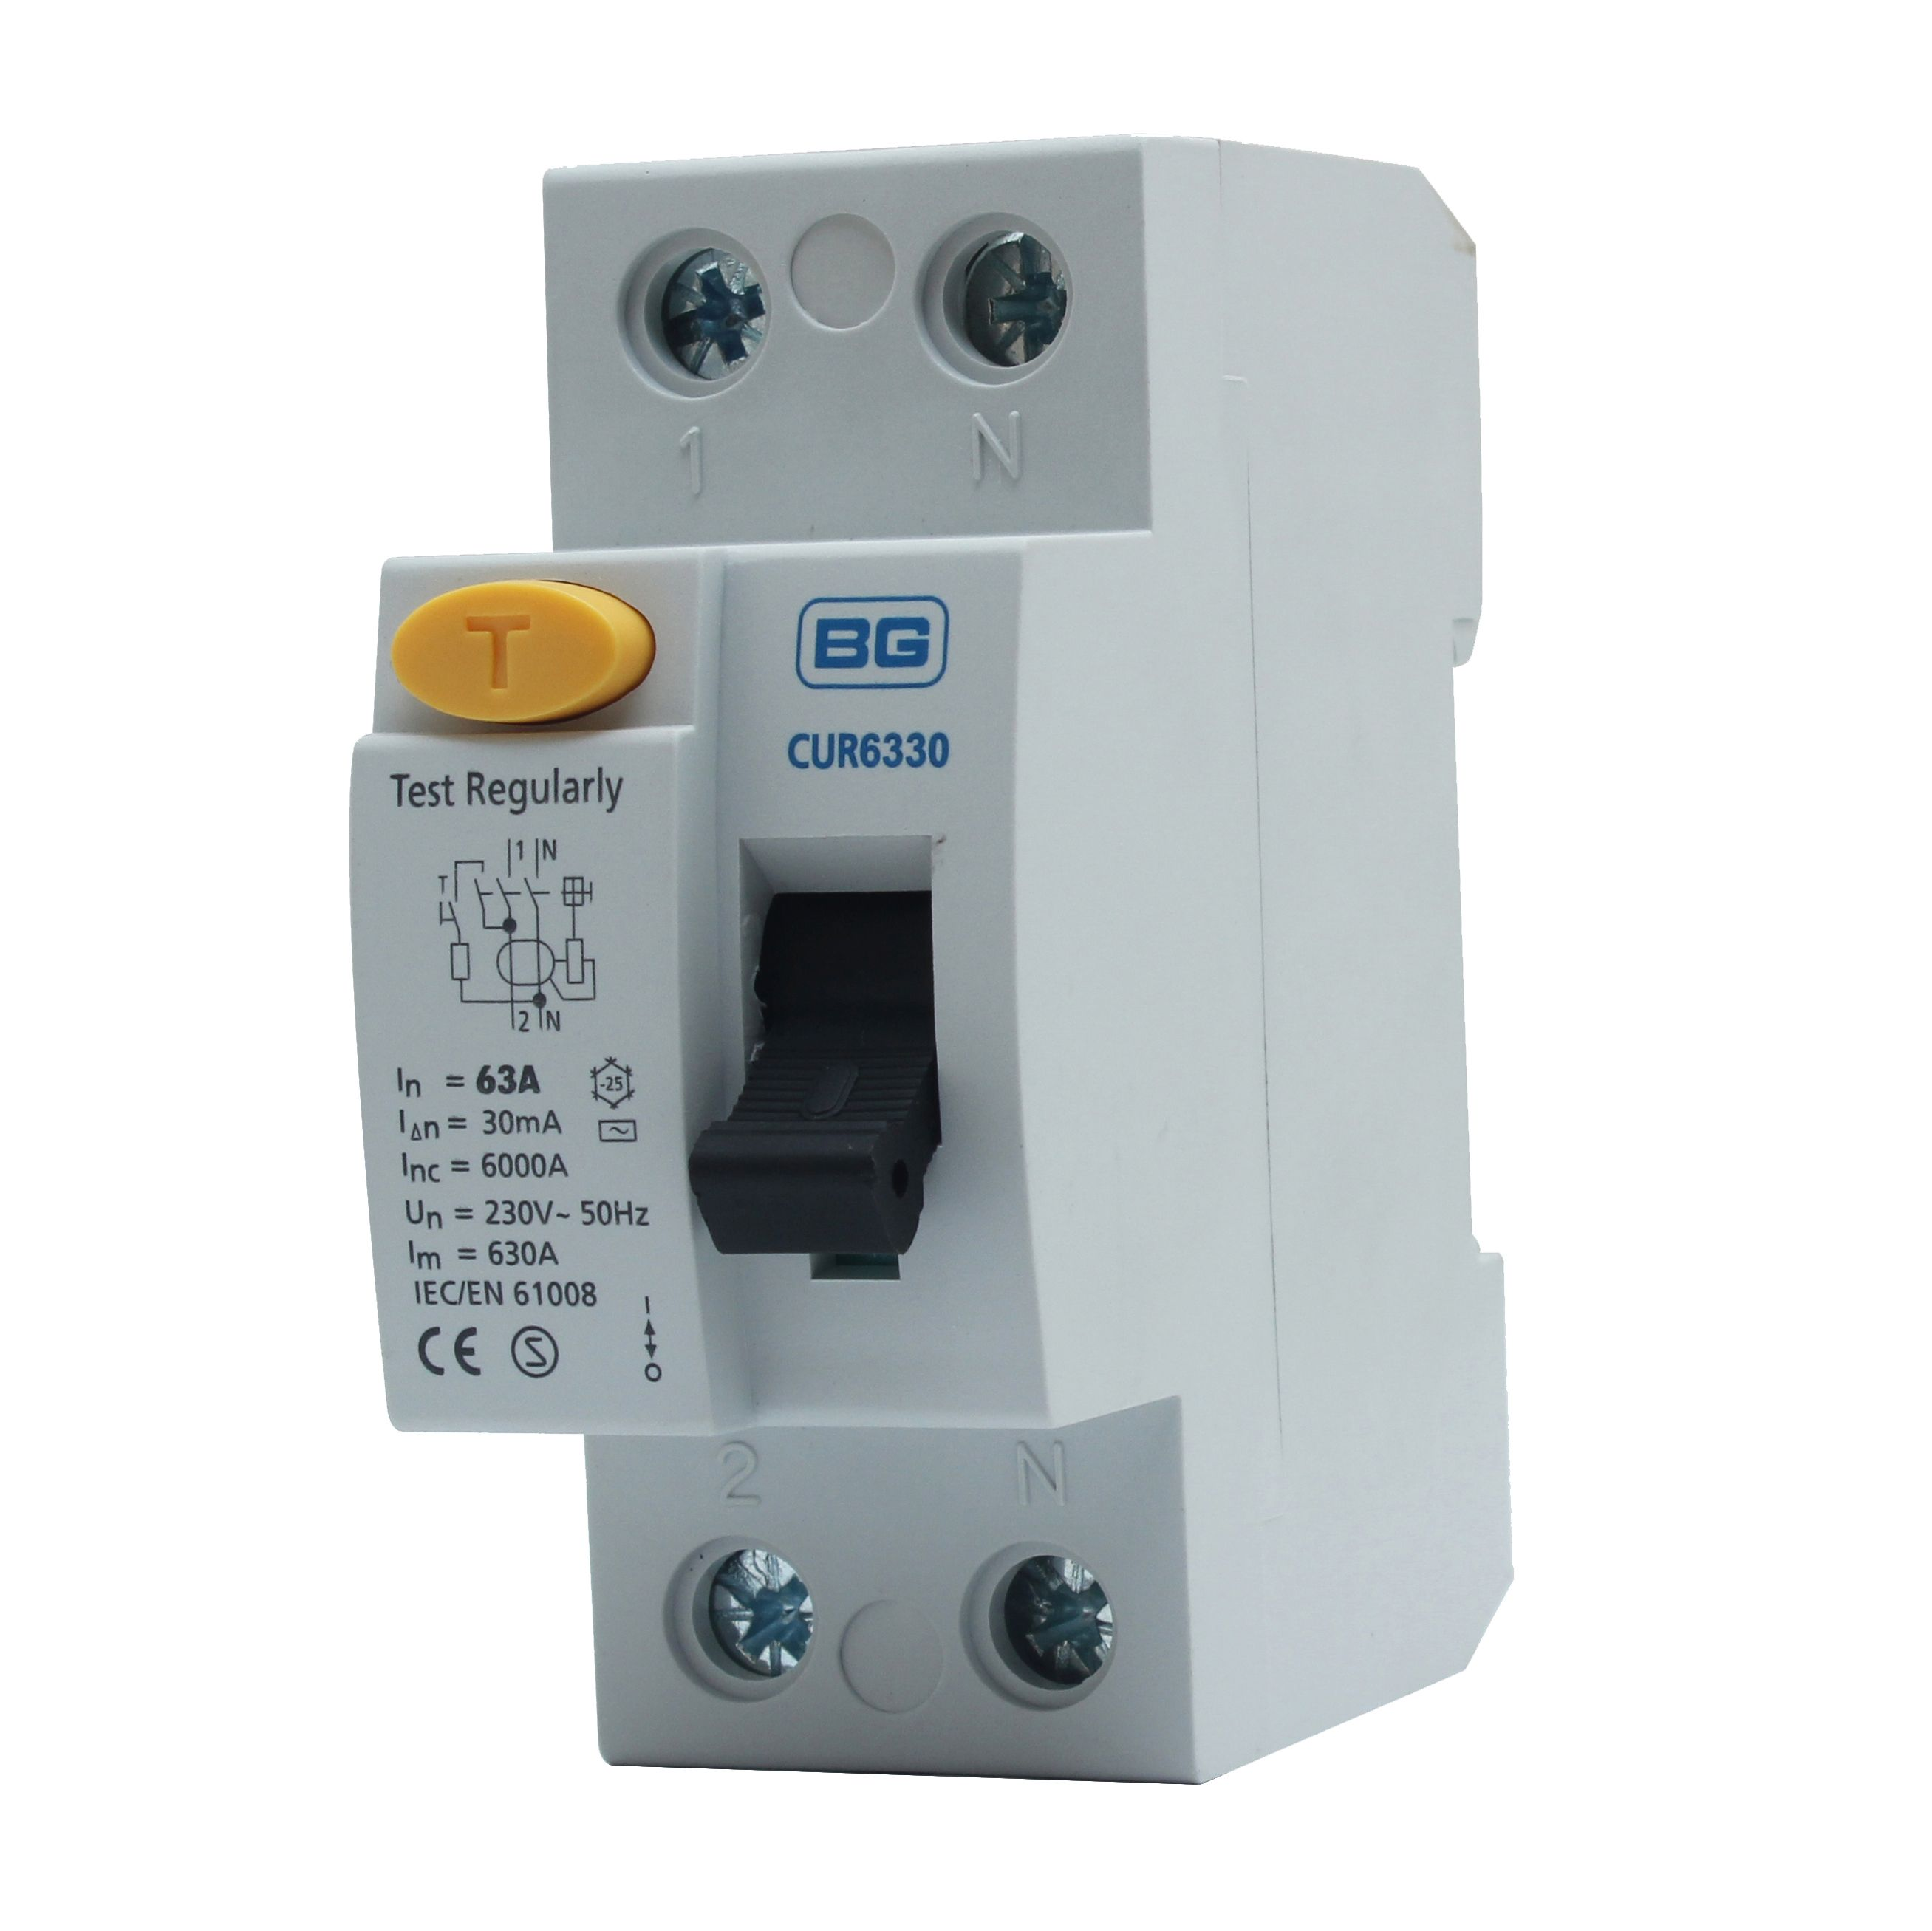 bg 63a double pole 230 400v 30ma rcd departments diy at b q rh diy com RCD Circuit Breaker Explanation Earth Systems